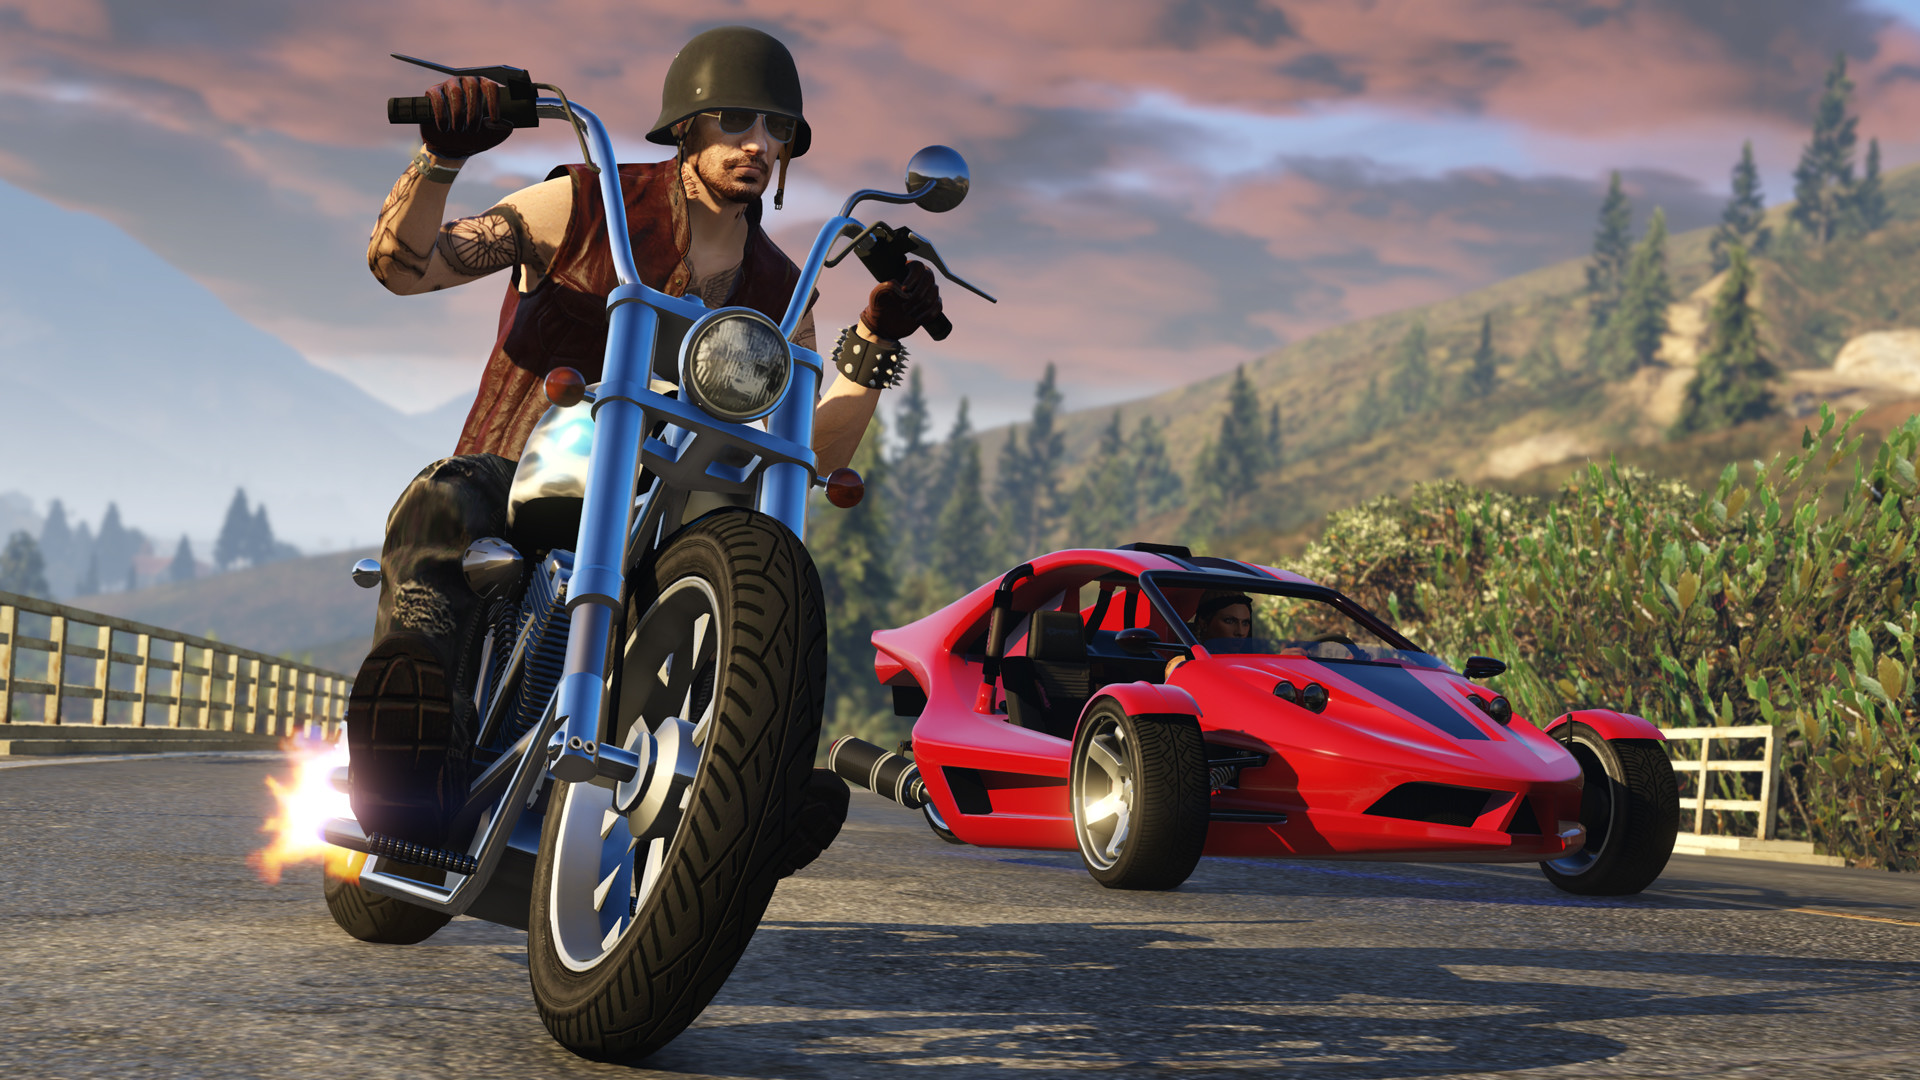 GTA Online: Bikers Update – Two New Vehicles and Sixth Purchasable Property  Now Available